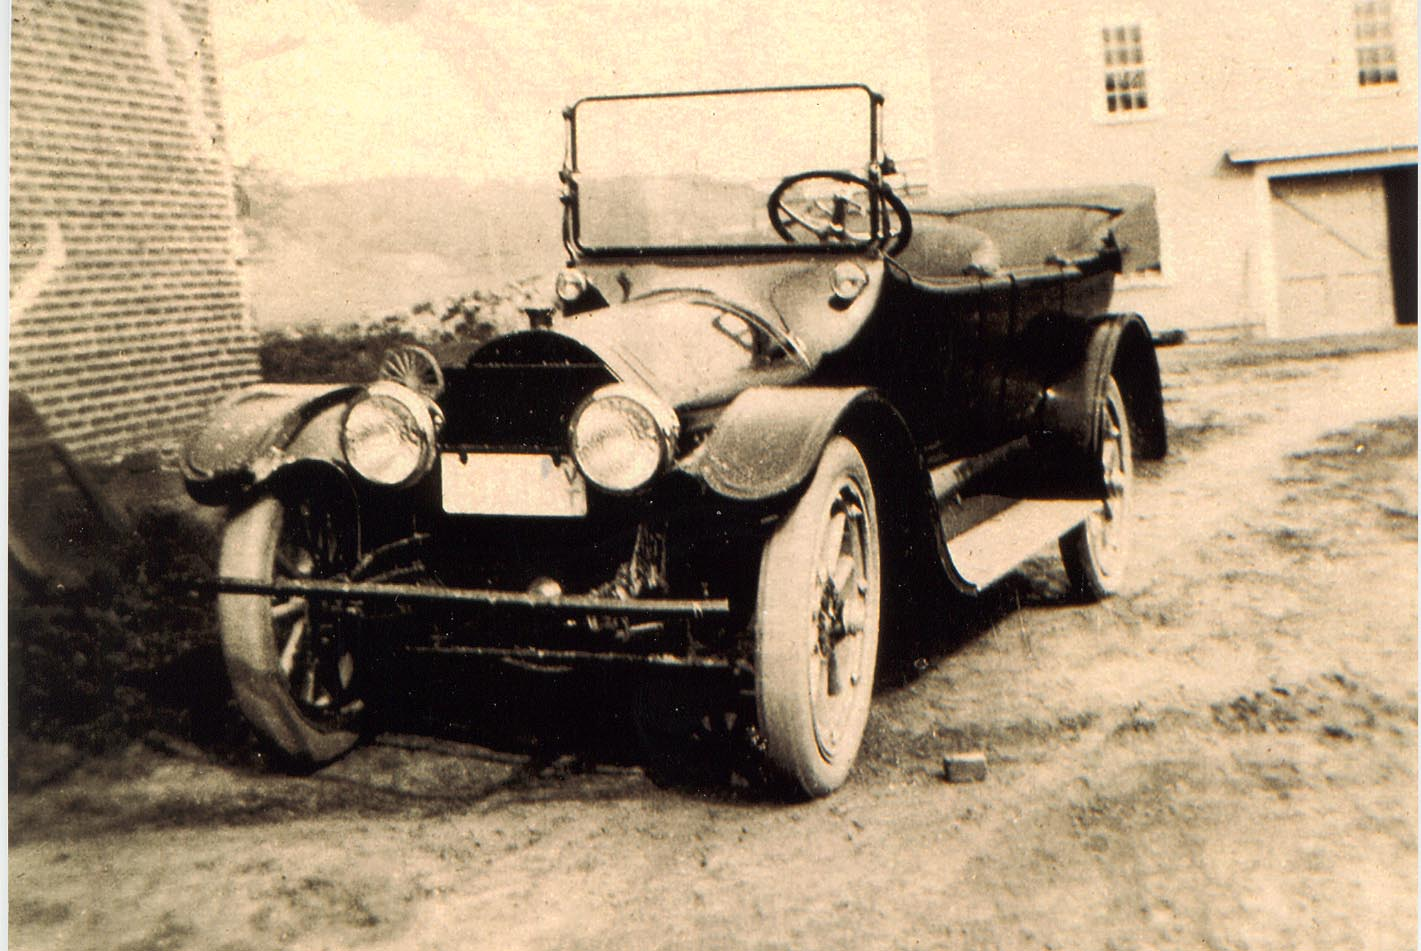 Leverette's 1917 Cadillac